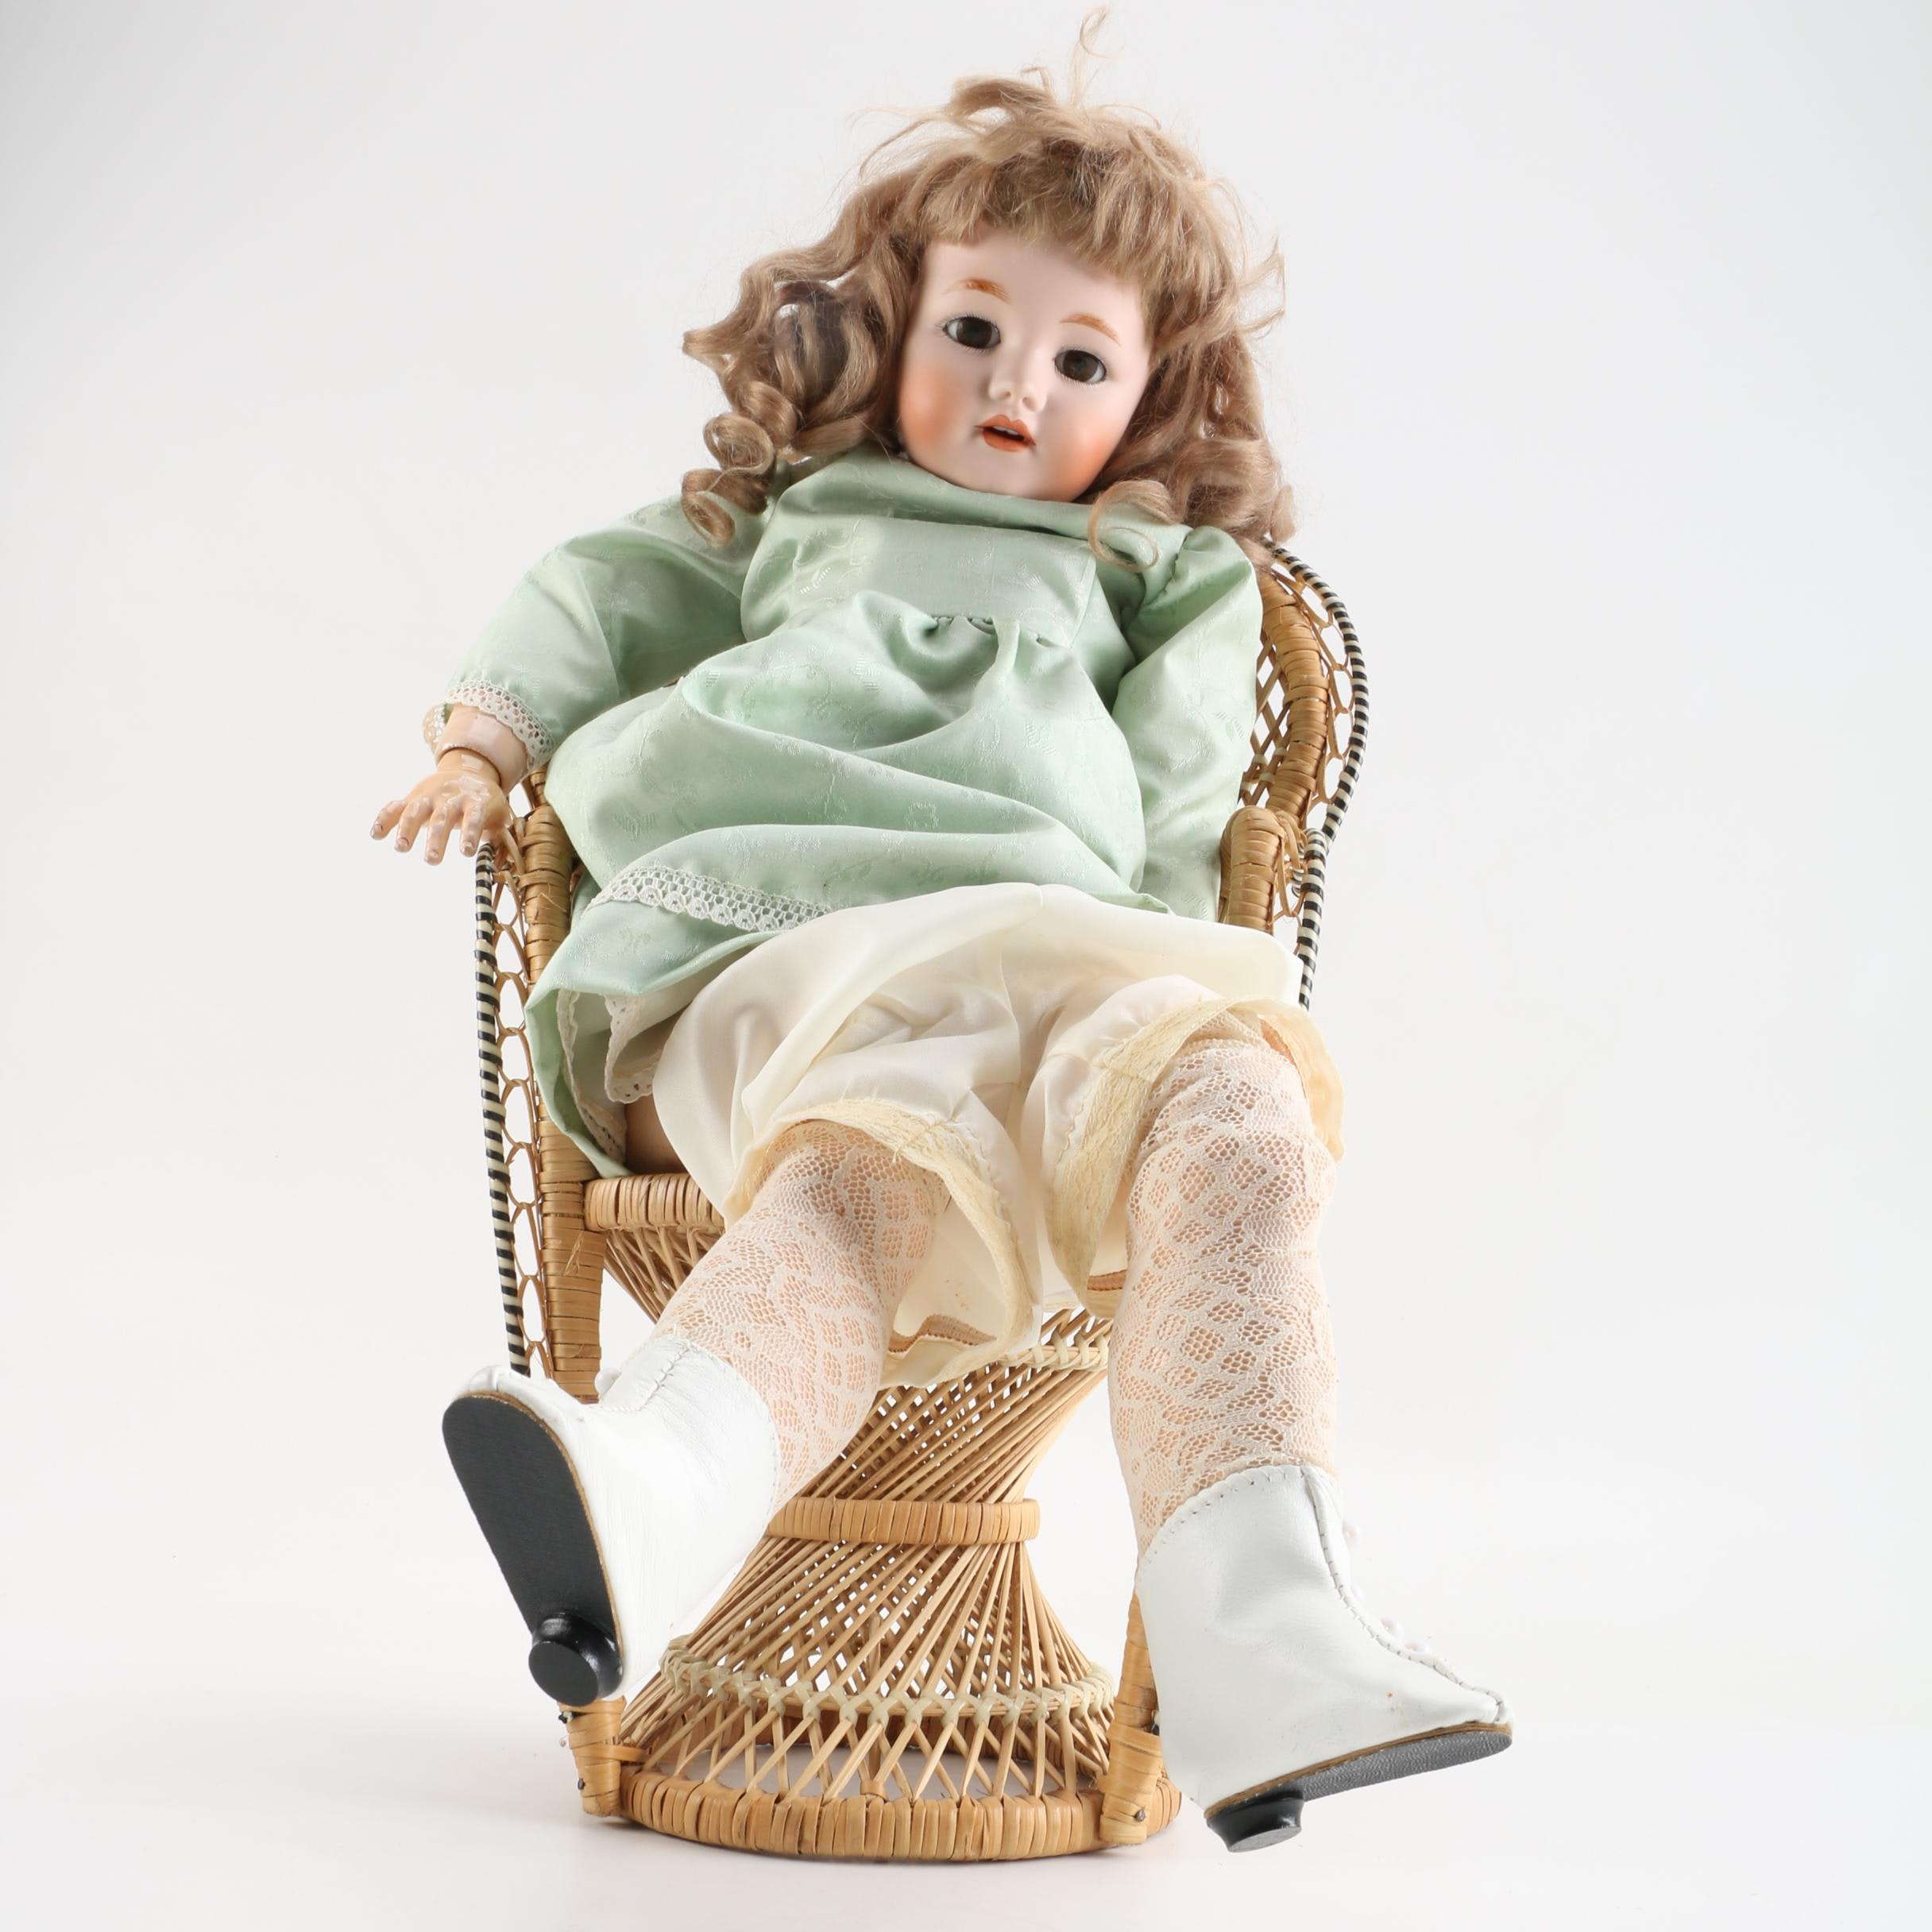 Vintage Doll and Wicker Chair